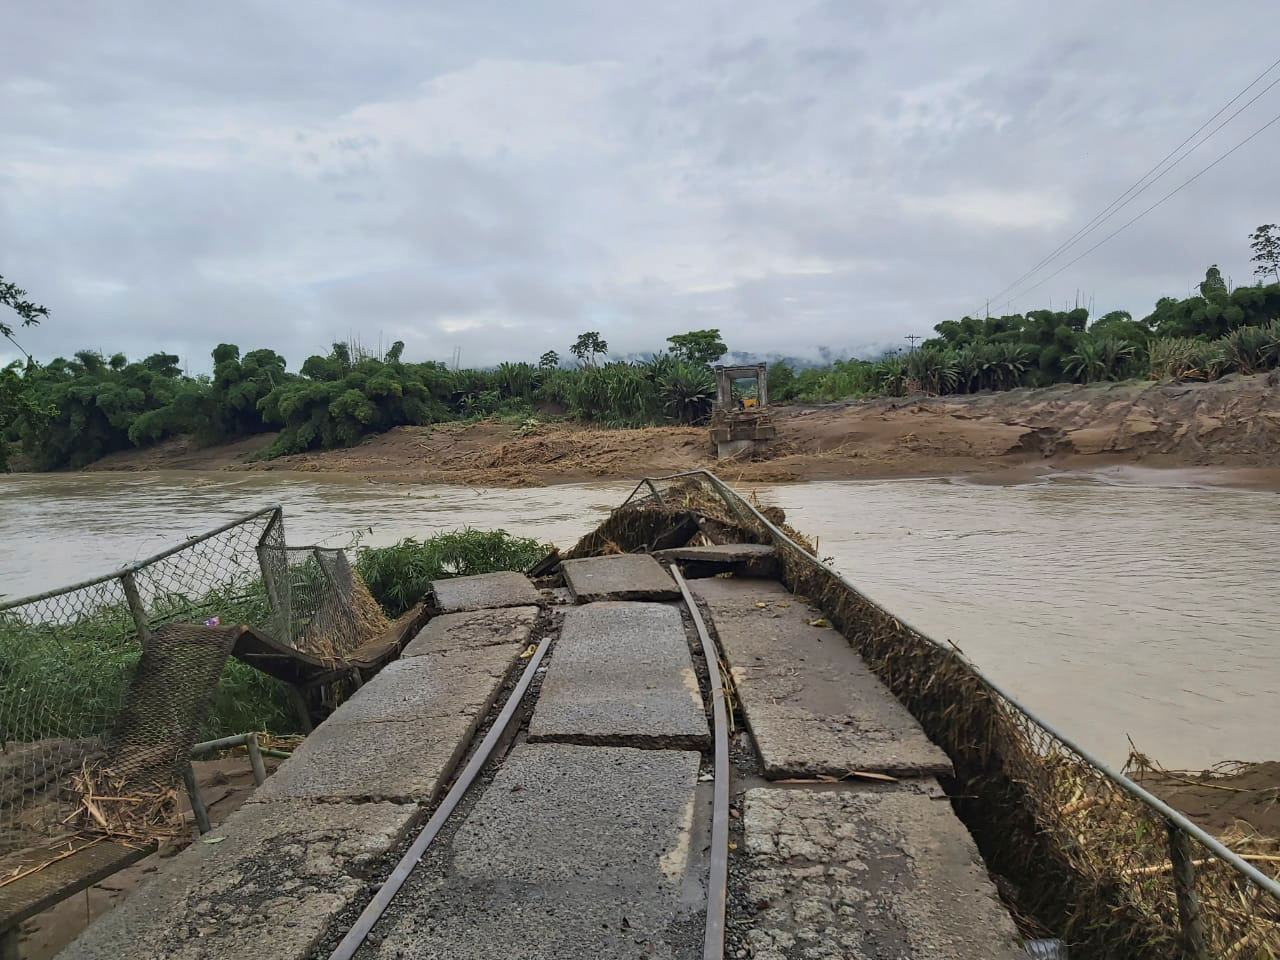 A view of the Atalanta railroad bridge damaged by floods due to heavy rains in Limon, Costa Rica July 26, 2021. Costa Rica's Presidency/Handout via REUTERS